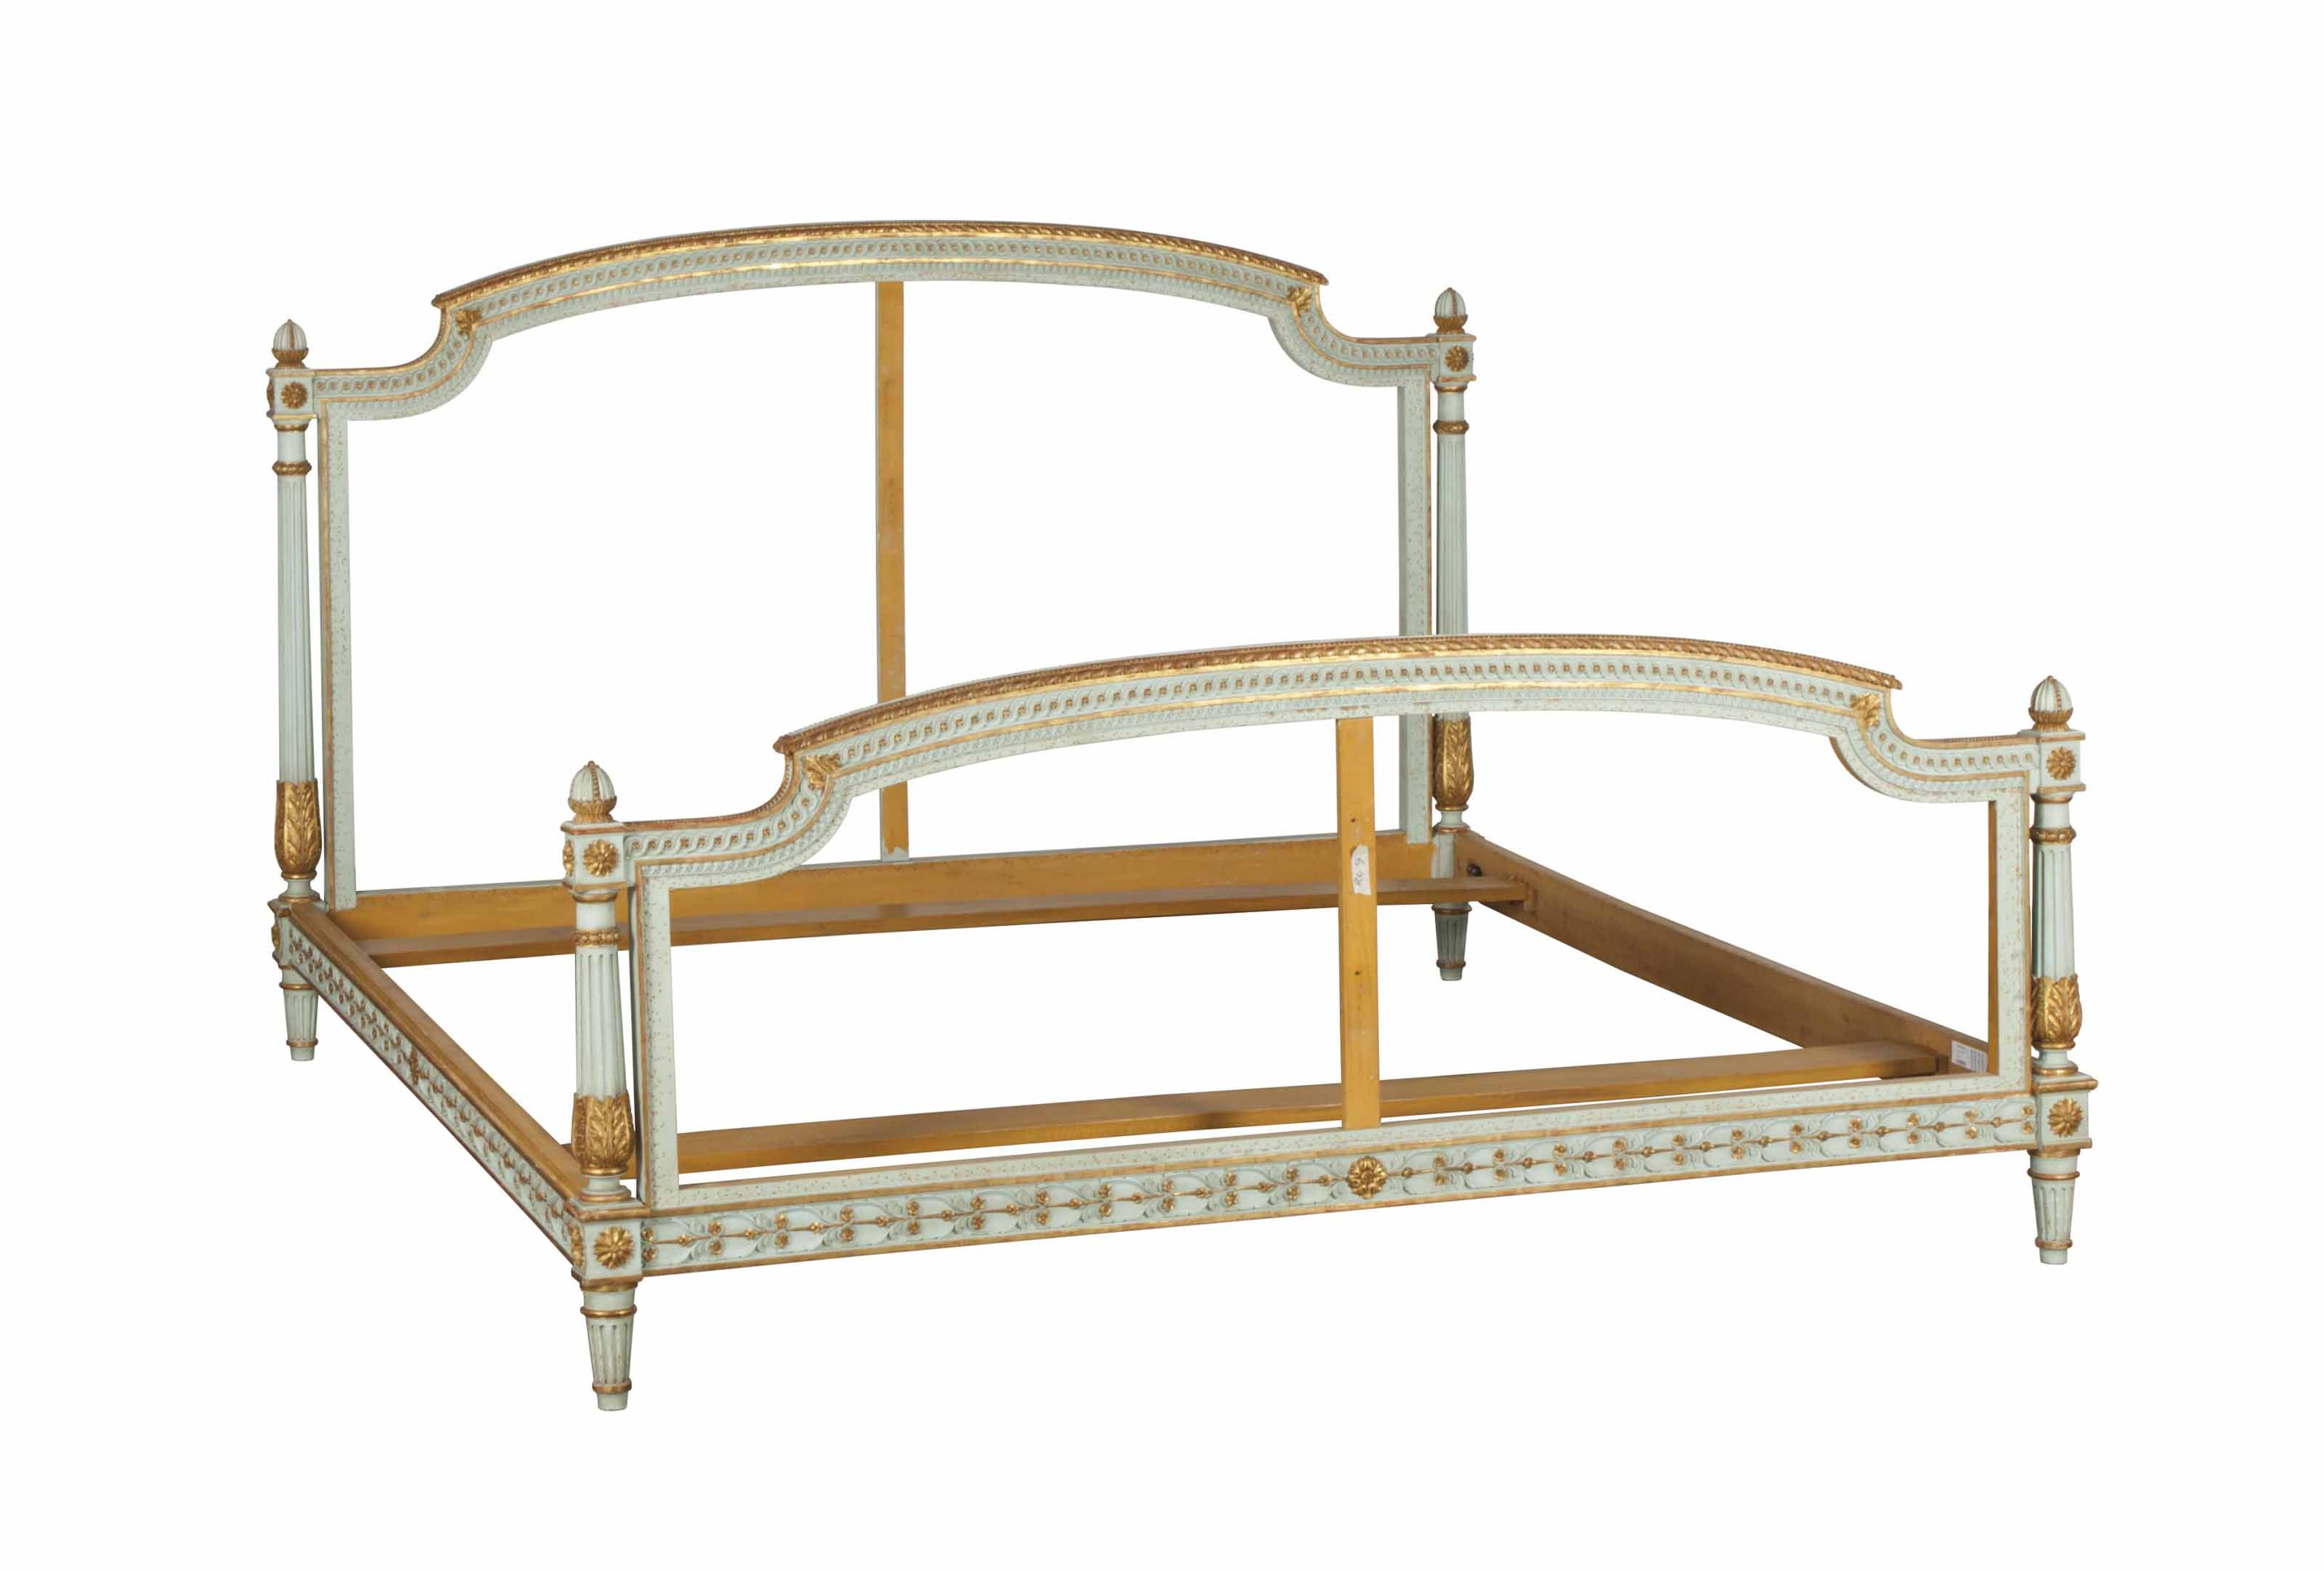 A LOUIS XVI STYLE BLUE GREEN PAINTED AND PARCEL GILT BED FRAME,